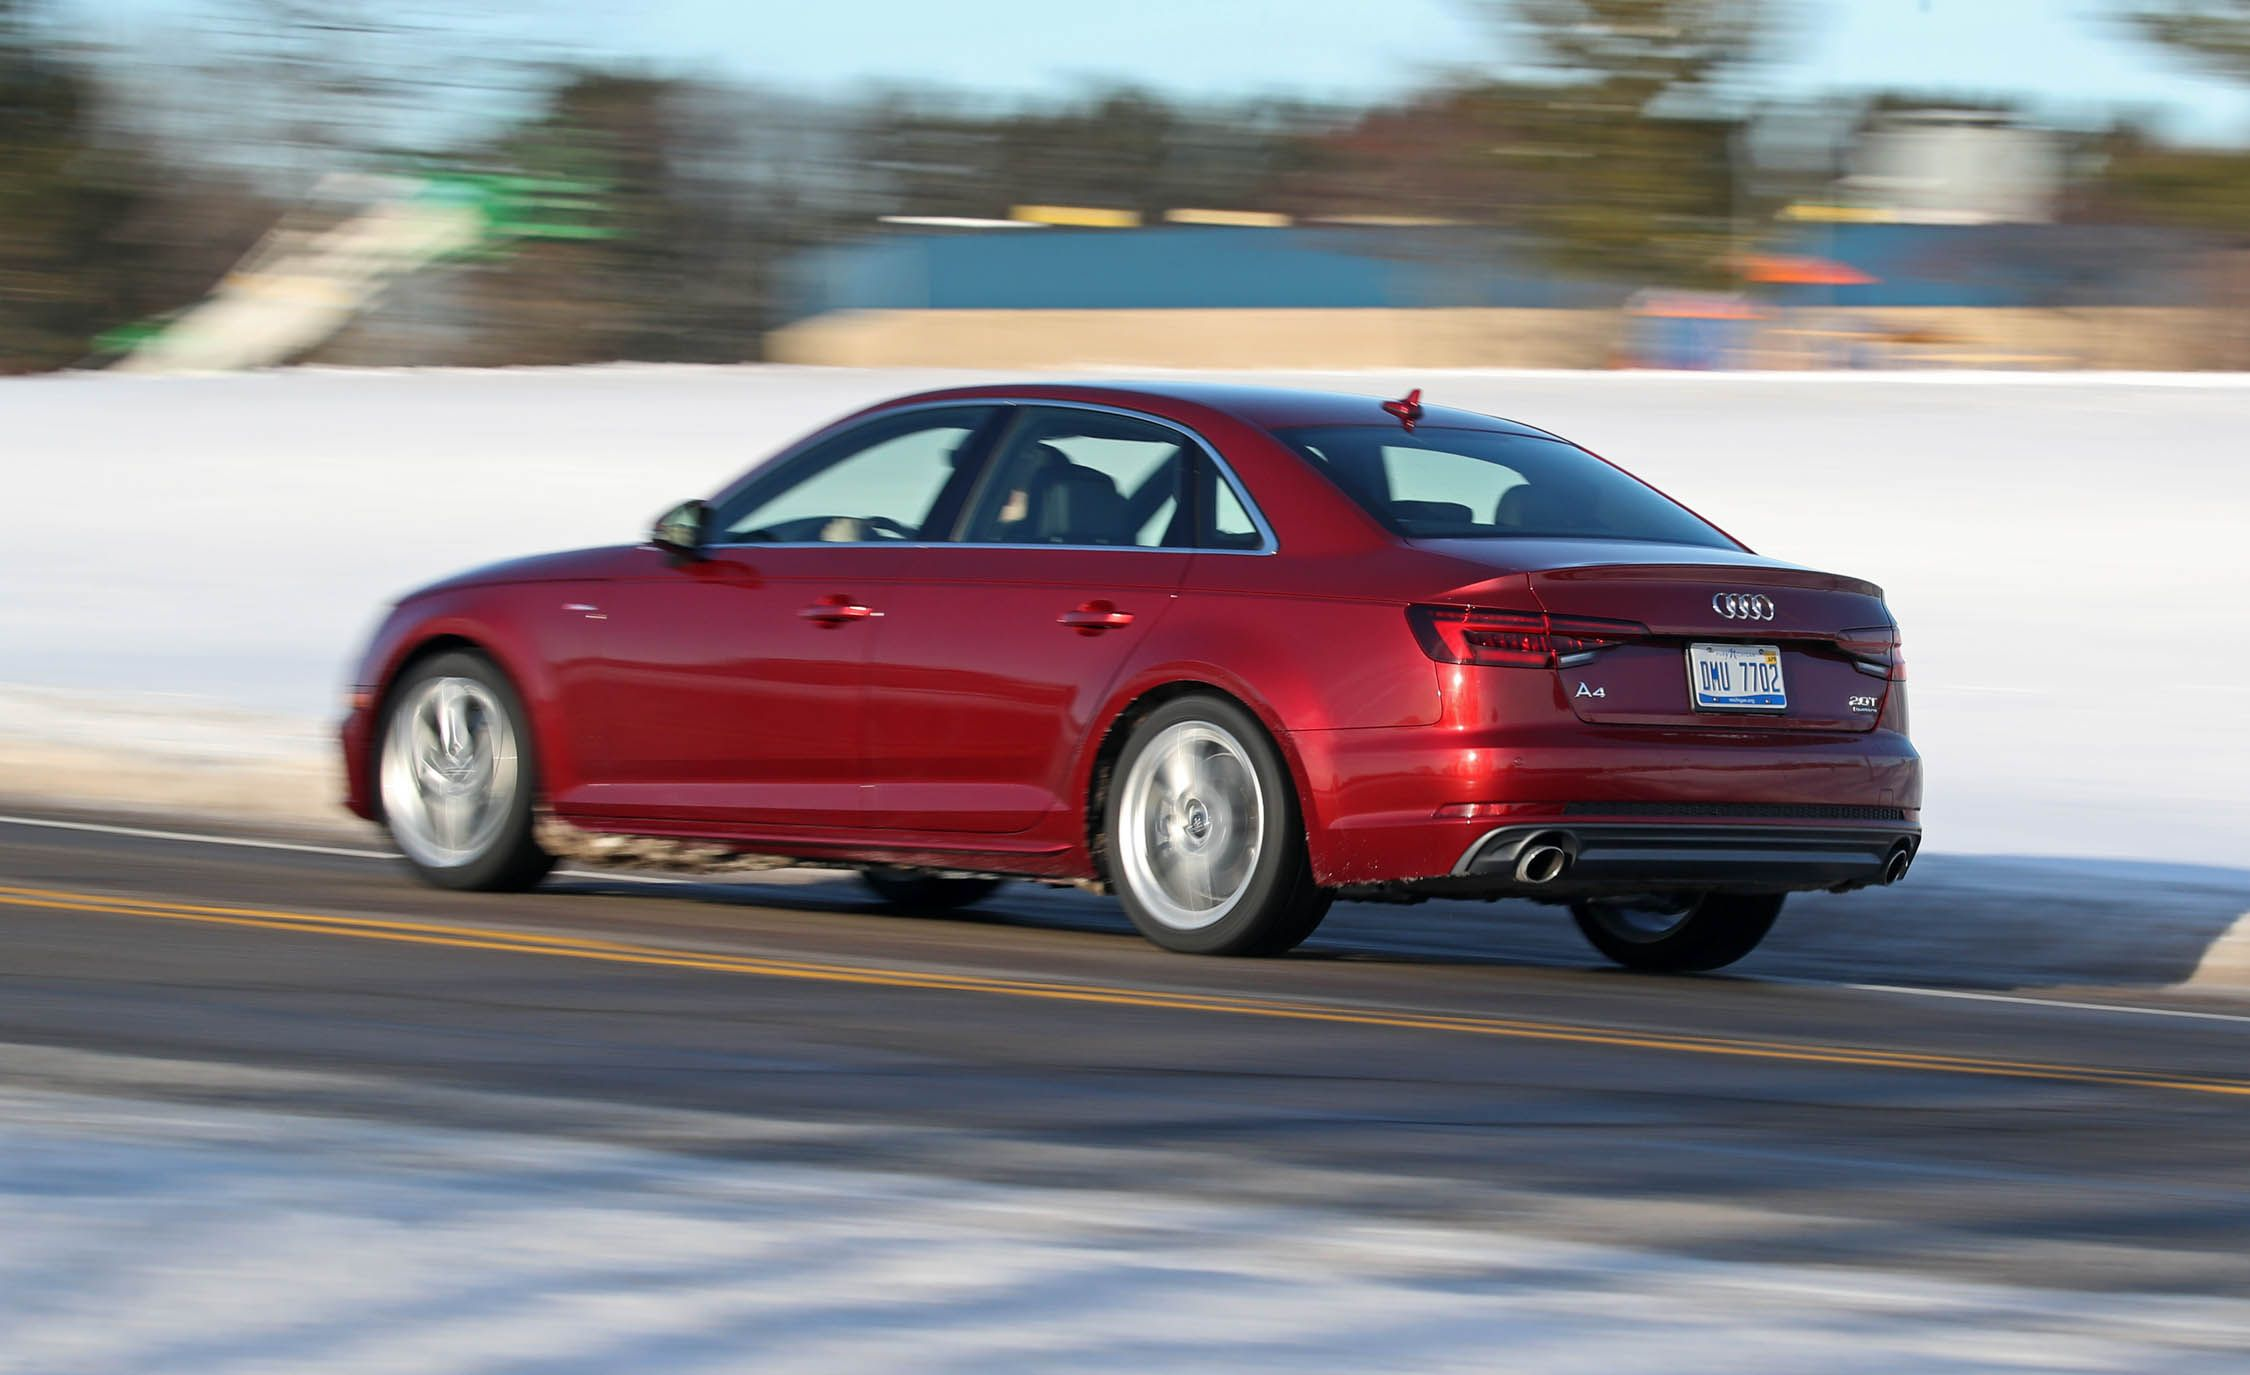 Audi A4 Reviews Audi A4 Price s and Specs